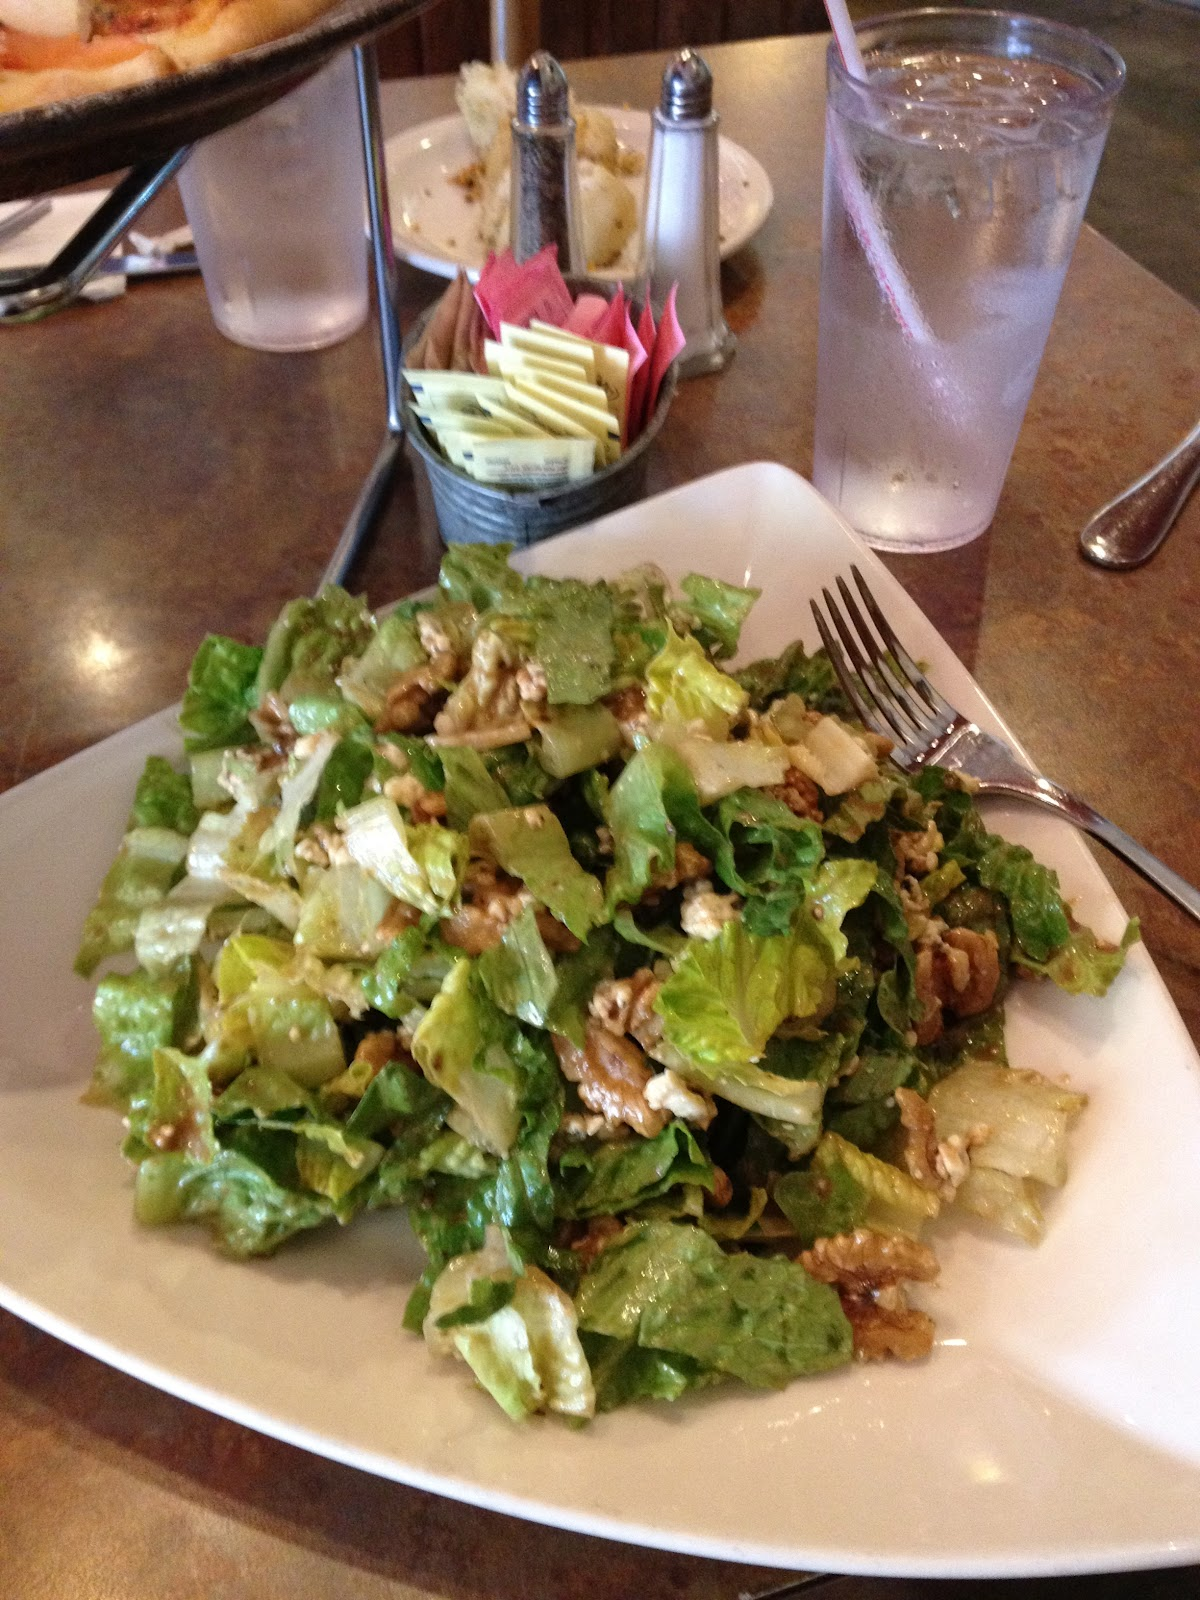 siriously delicious maternity salad